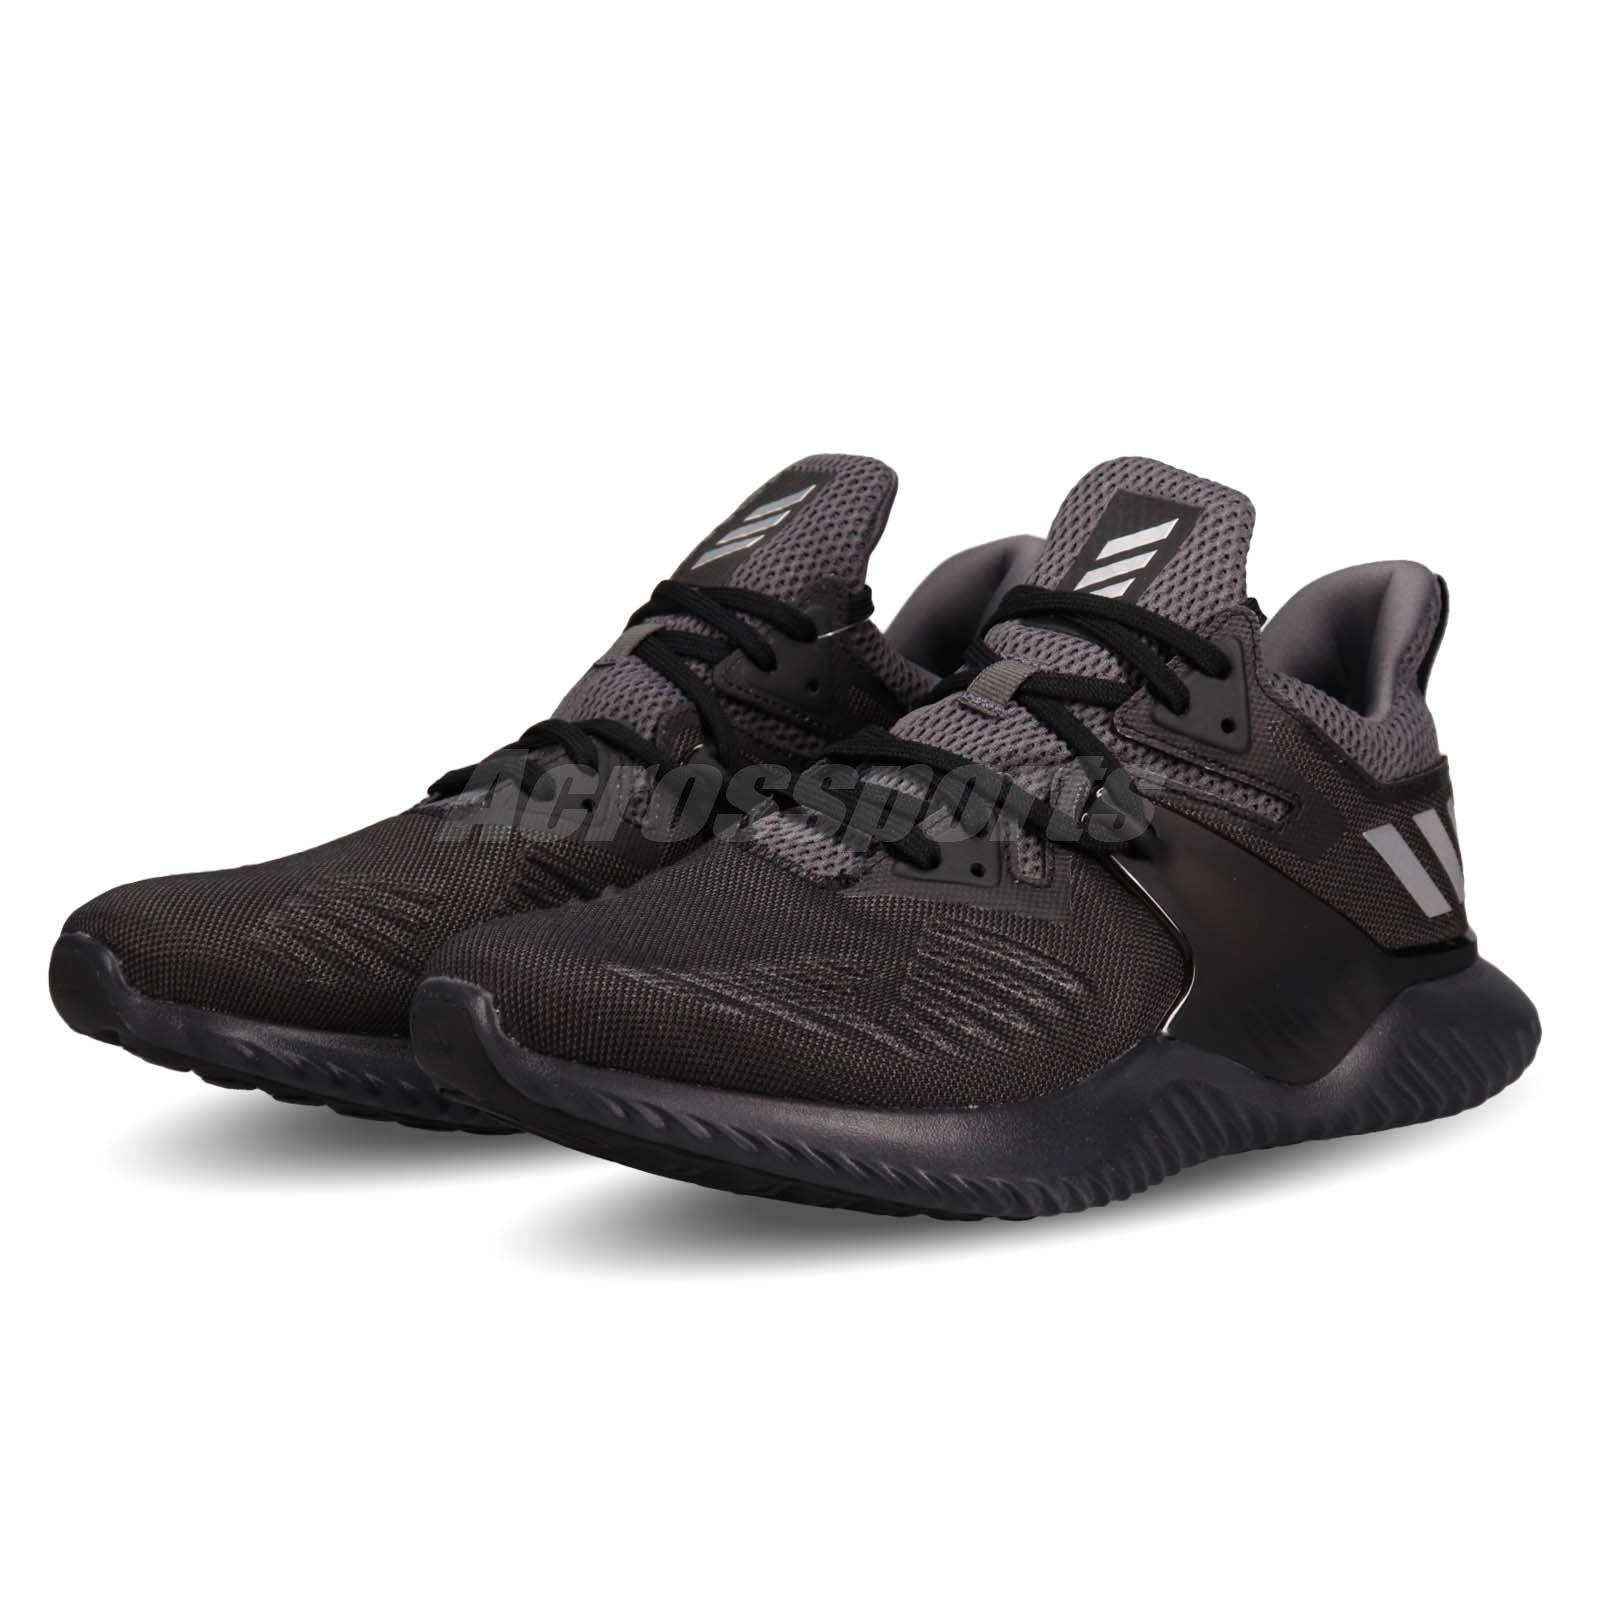 huge discount c3f30 baa90 Details about adidas Alphabounce Beyond 2 M Black Silver Men Running Shoes  Sneakers BB7568